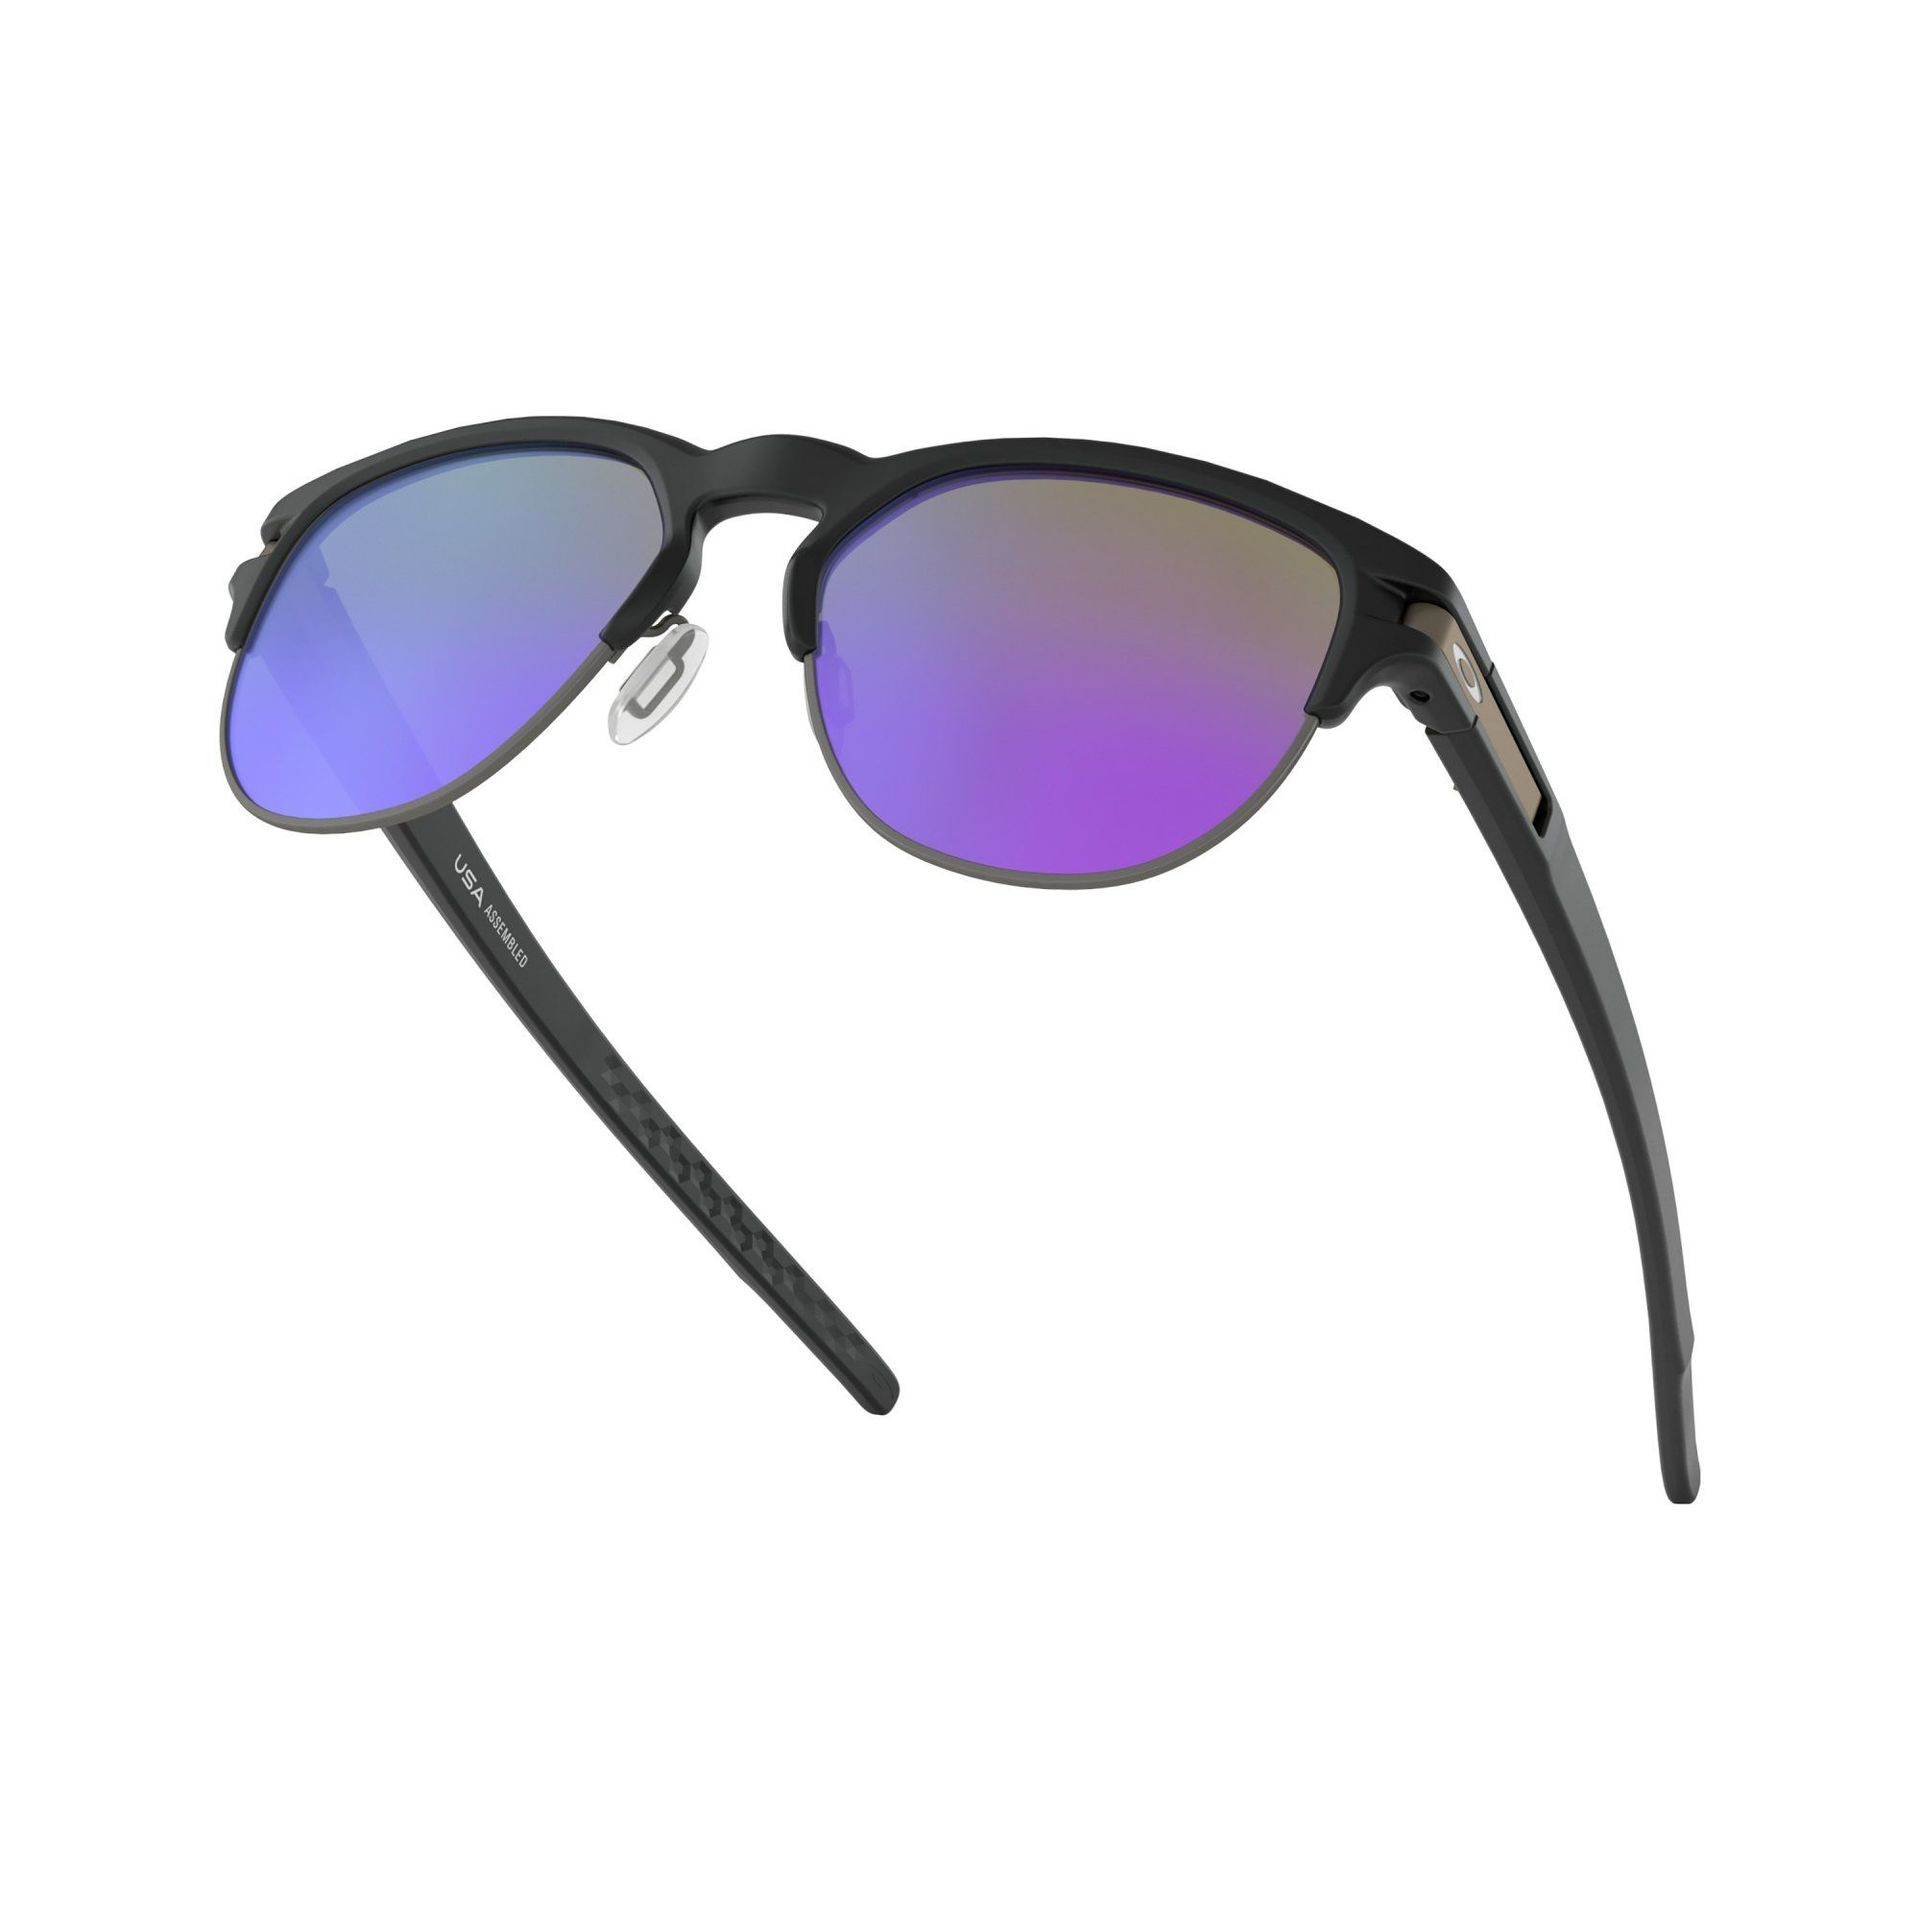 OKULARY OAKLEY LATCH KEY MATTE BLACK|VIOLET IRIDIUM 5